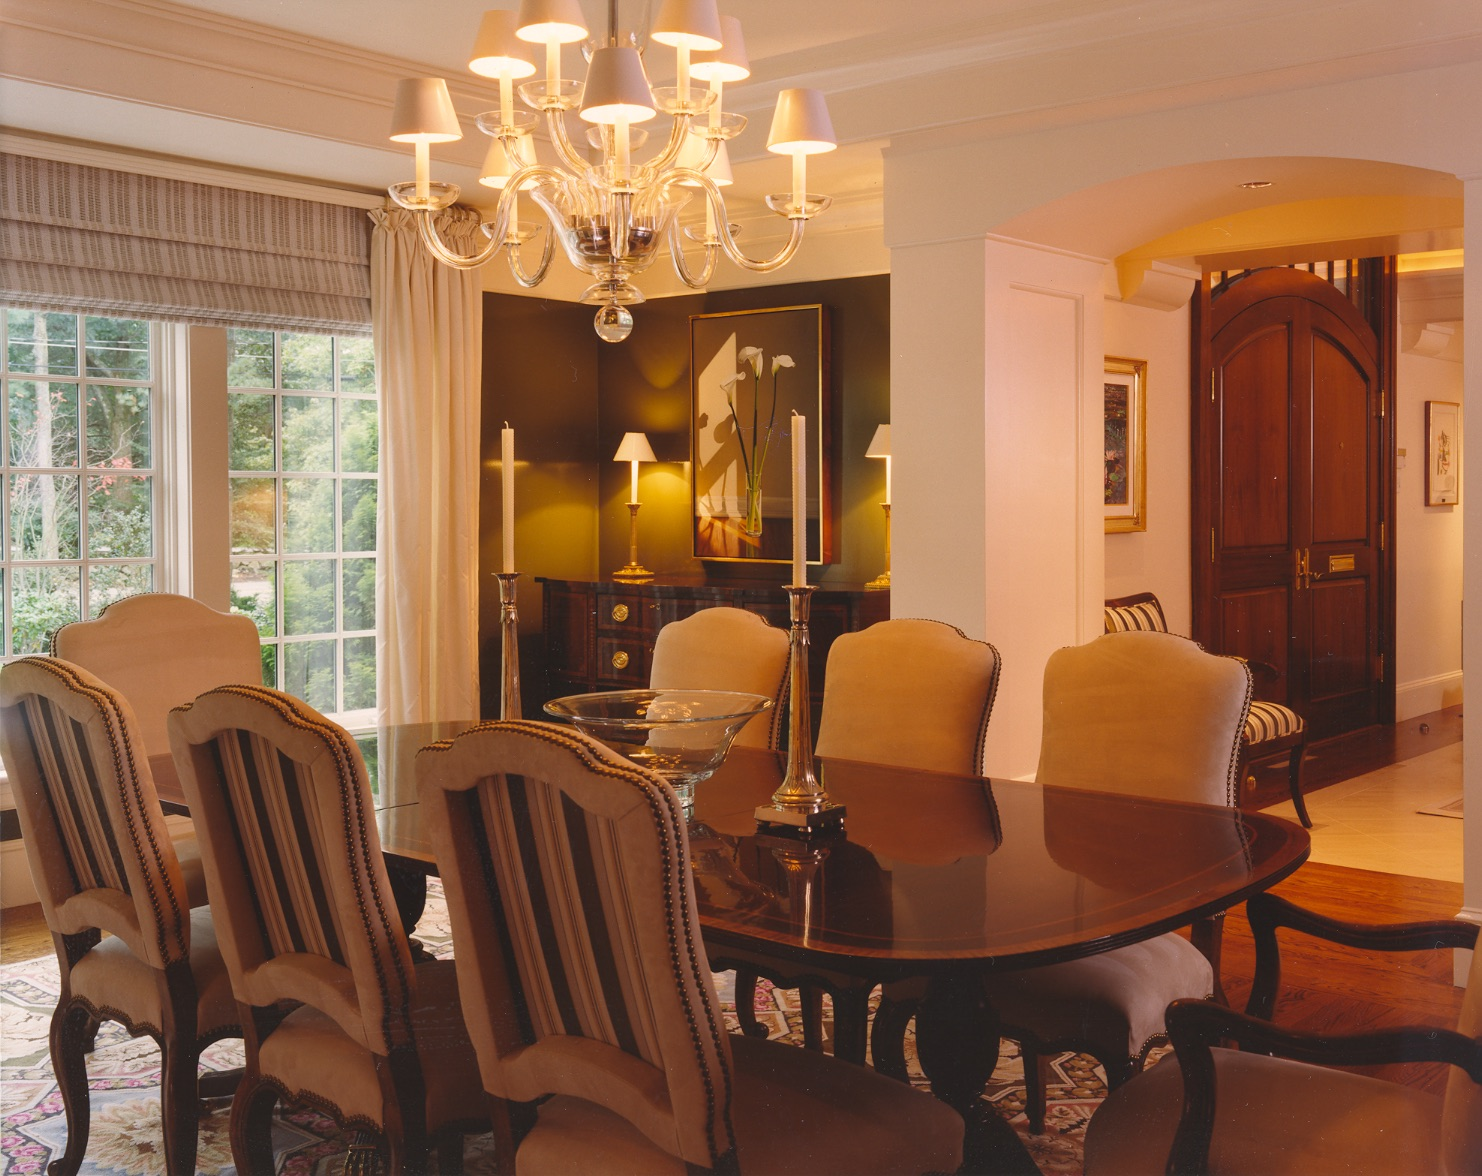 Transitional, country-influenced dining area.